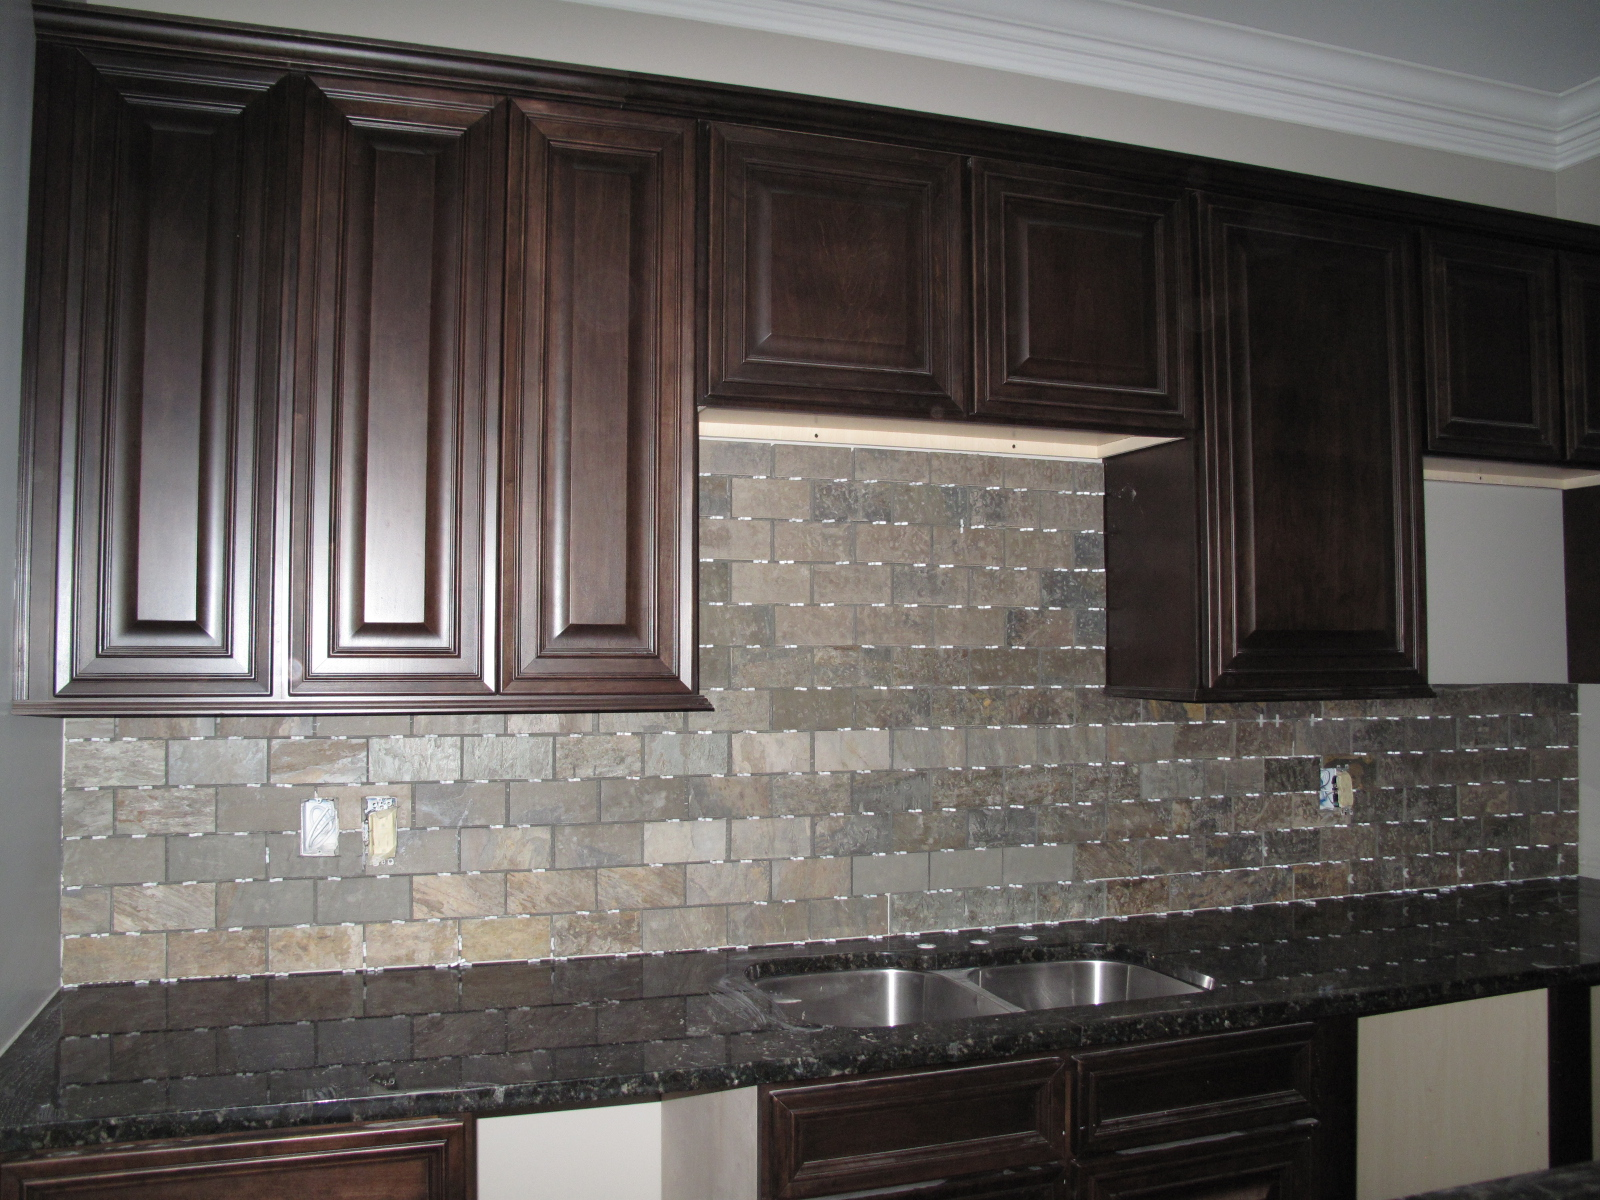 Backsplash on pinterest slate backsplash dark cabinets for Black kitchen backsplash ideas